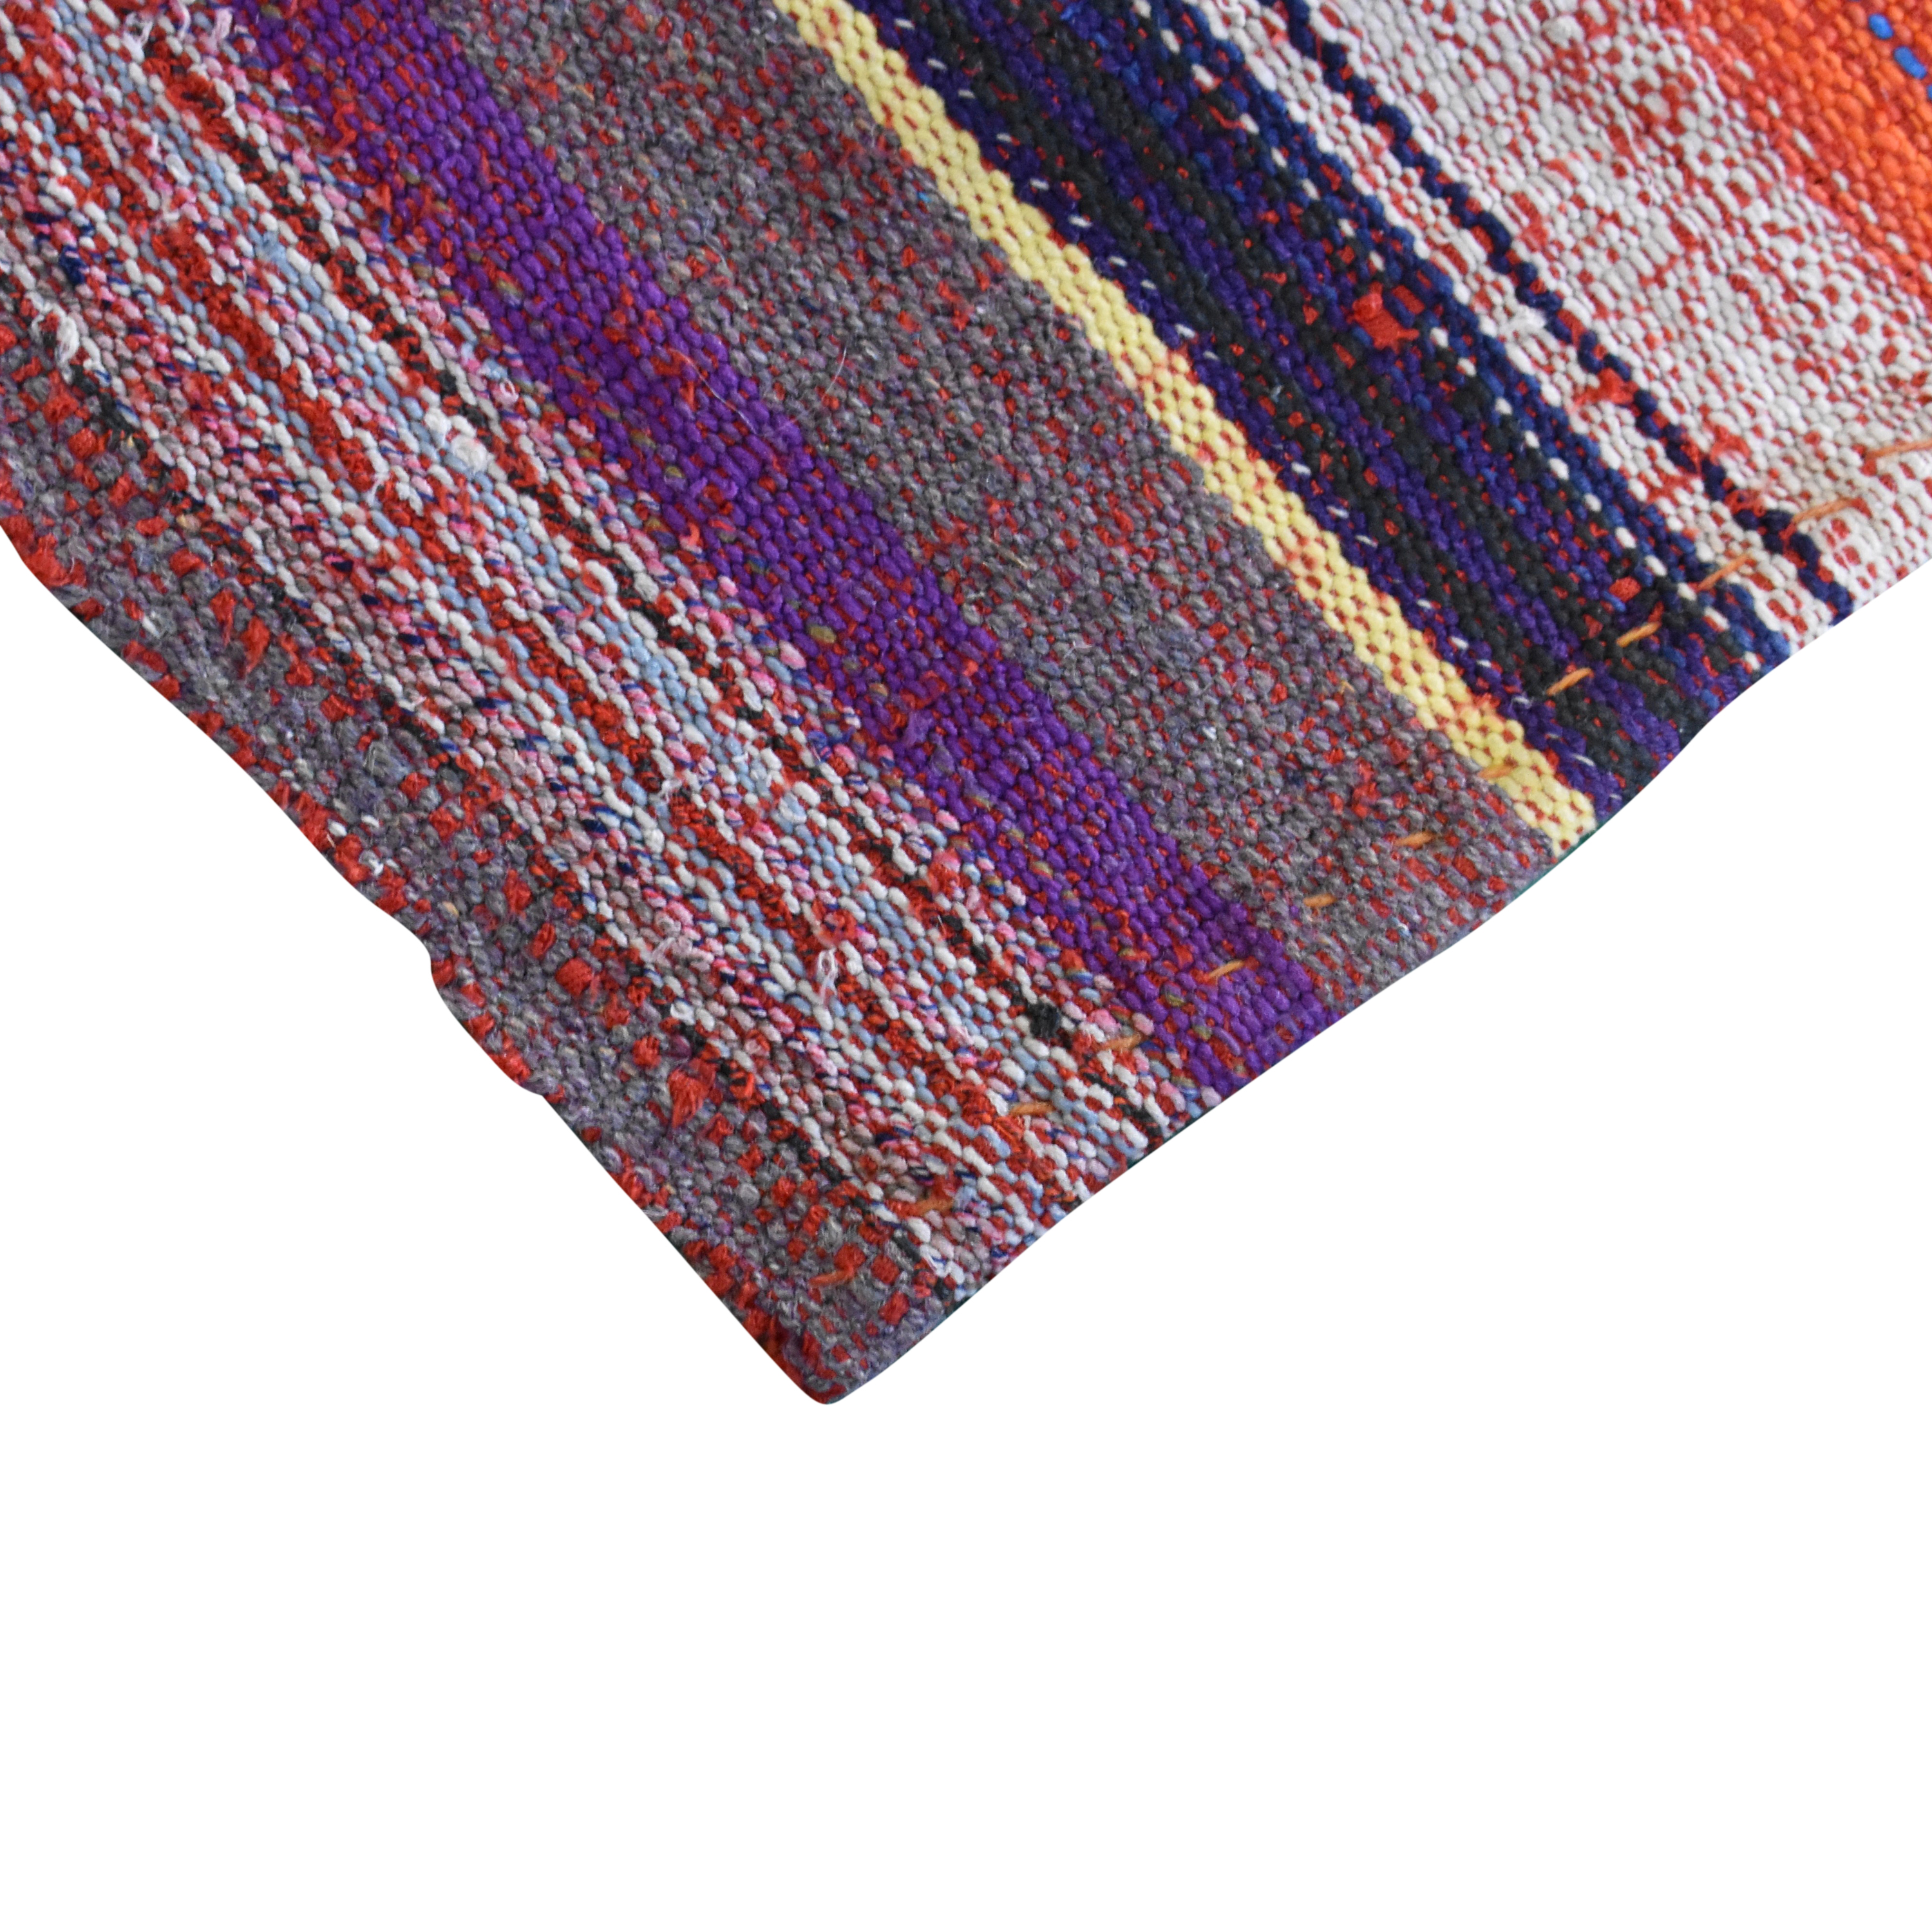 Double Knot Double Knot Striped Kilim Area Rug second hand